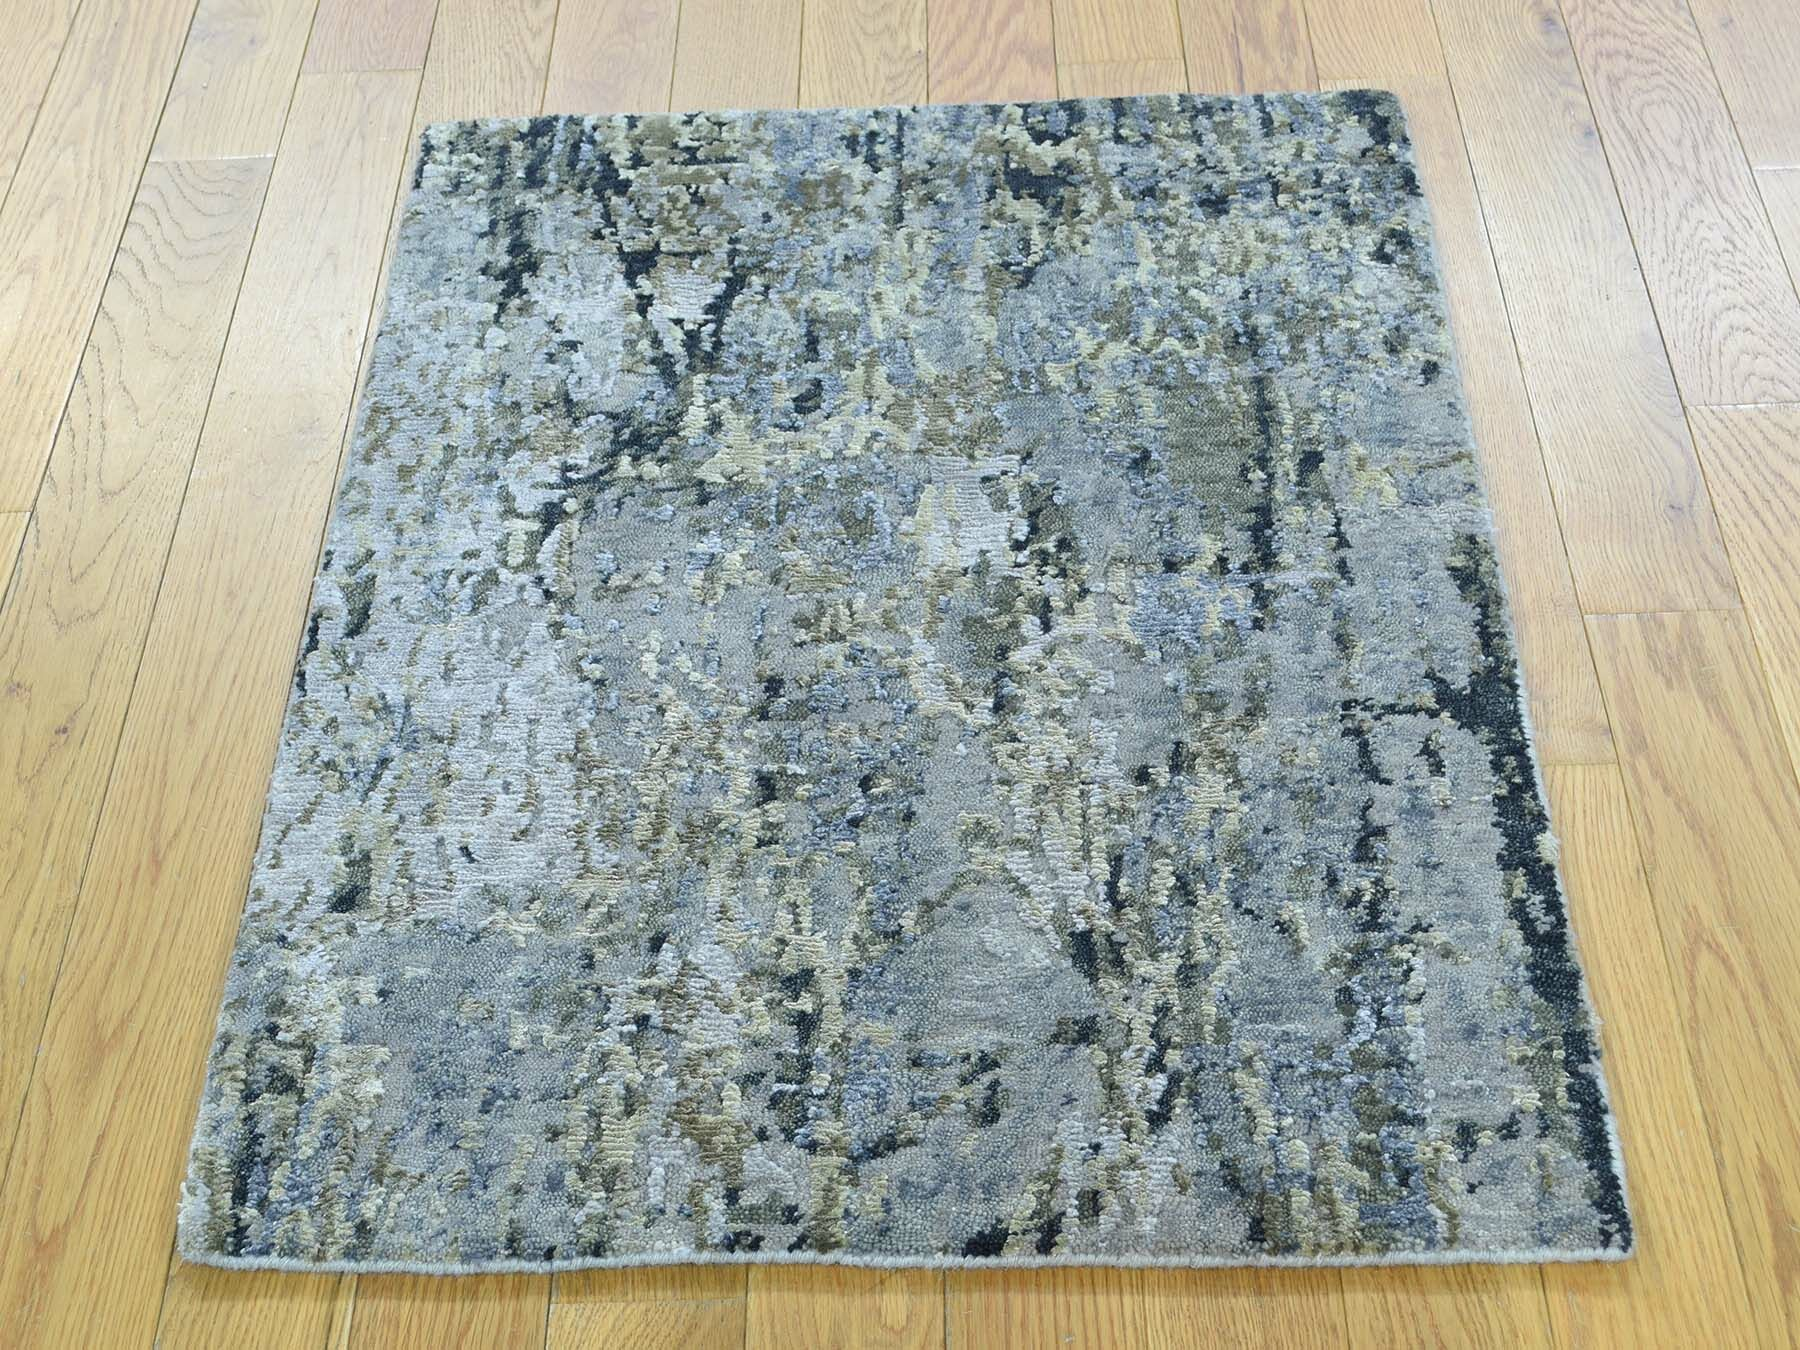 One-of-a-Kind Brigitte Abstract Design Handwoven Wool/Silk Area Rug